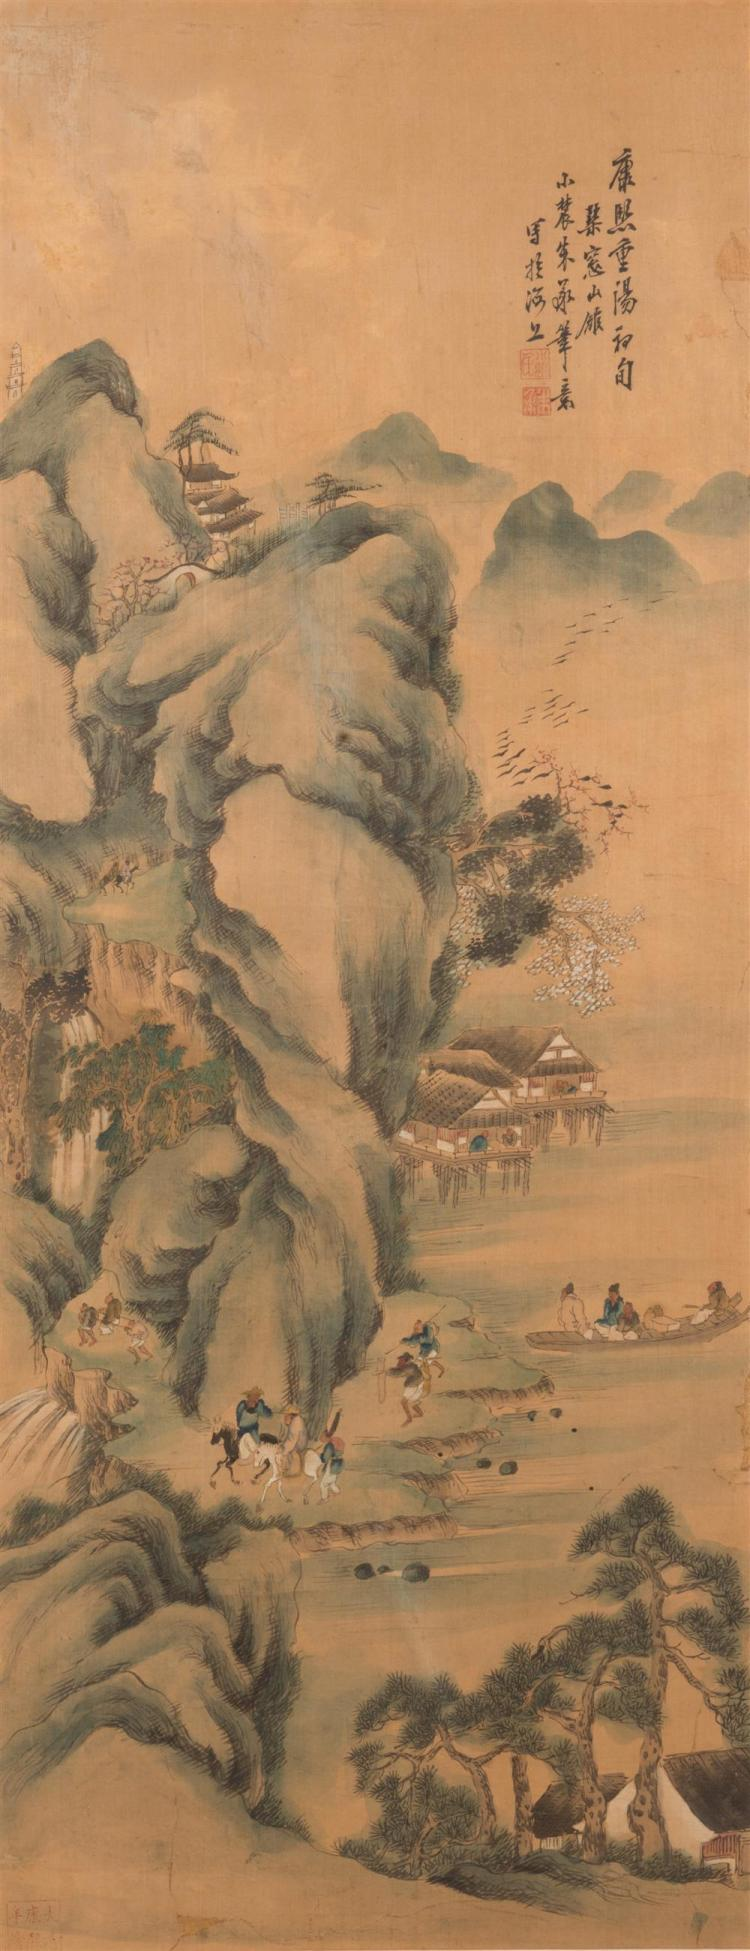 Framed Chinese Scroll, depicting a mountainous landscape with figures on horseback and in a boat